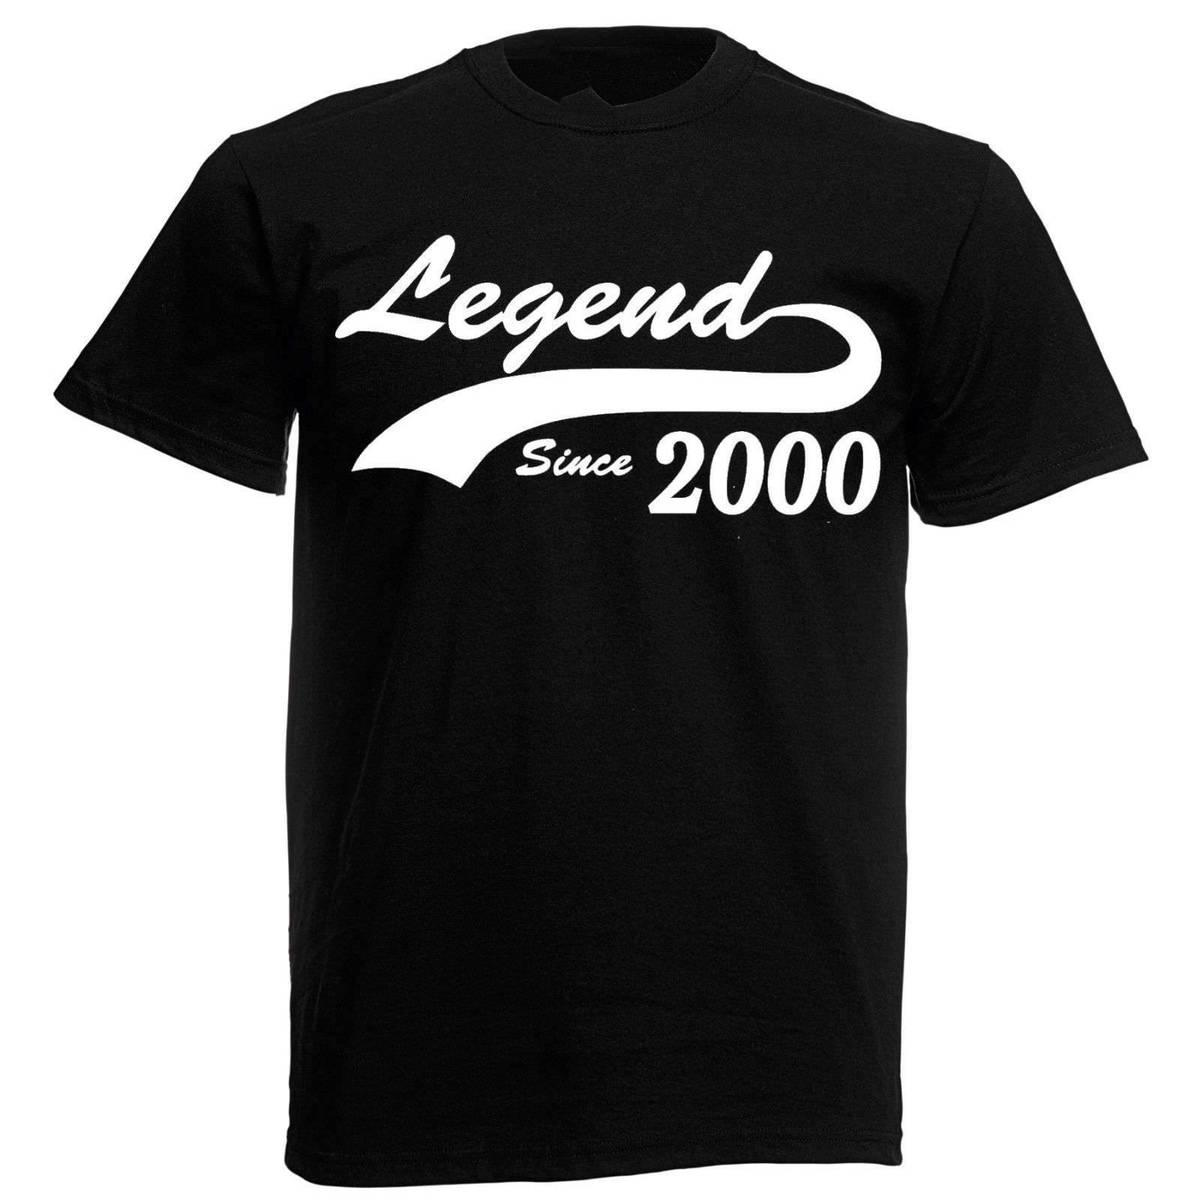 Legend 2000 T Shirt Mens 18th Birthday Gifts Presents Gift Ideas For Men Boys Fashiont Shirts And From